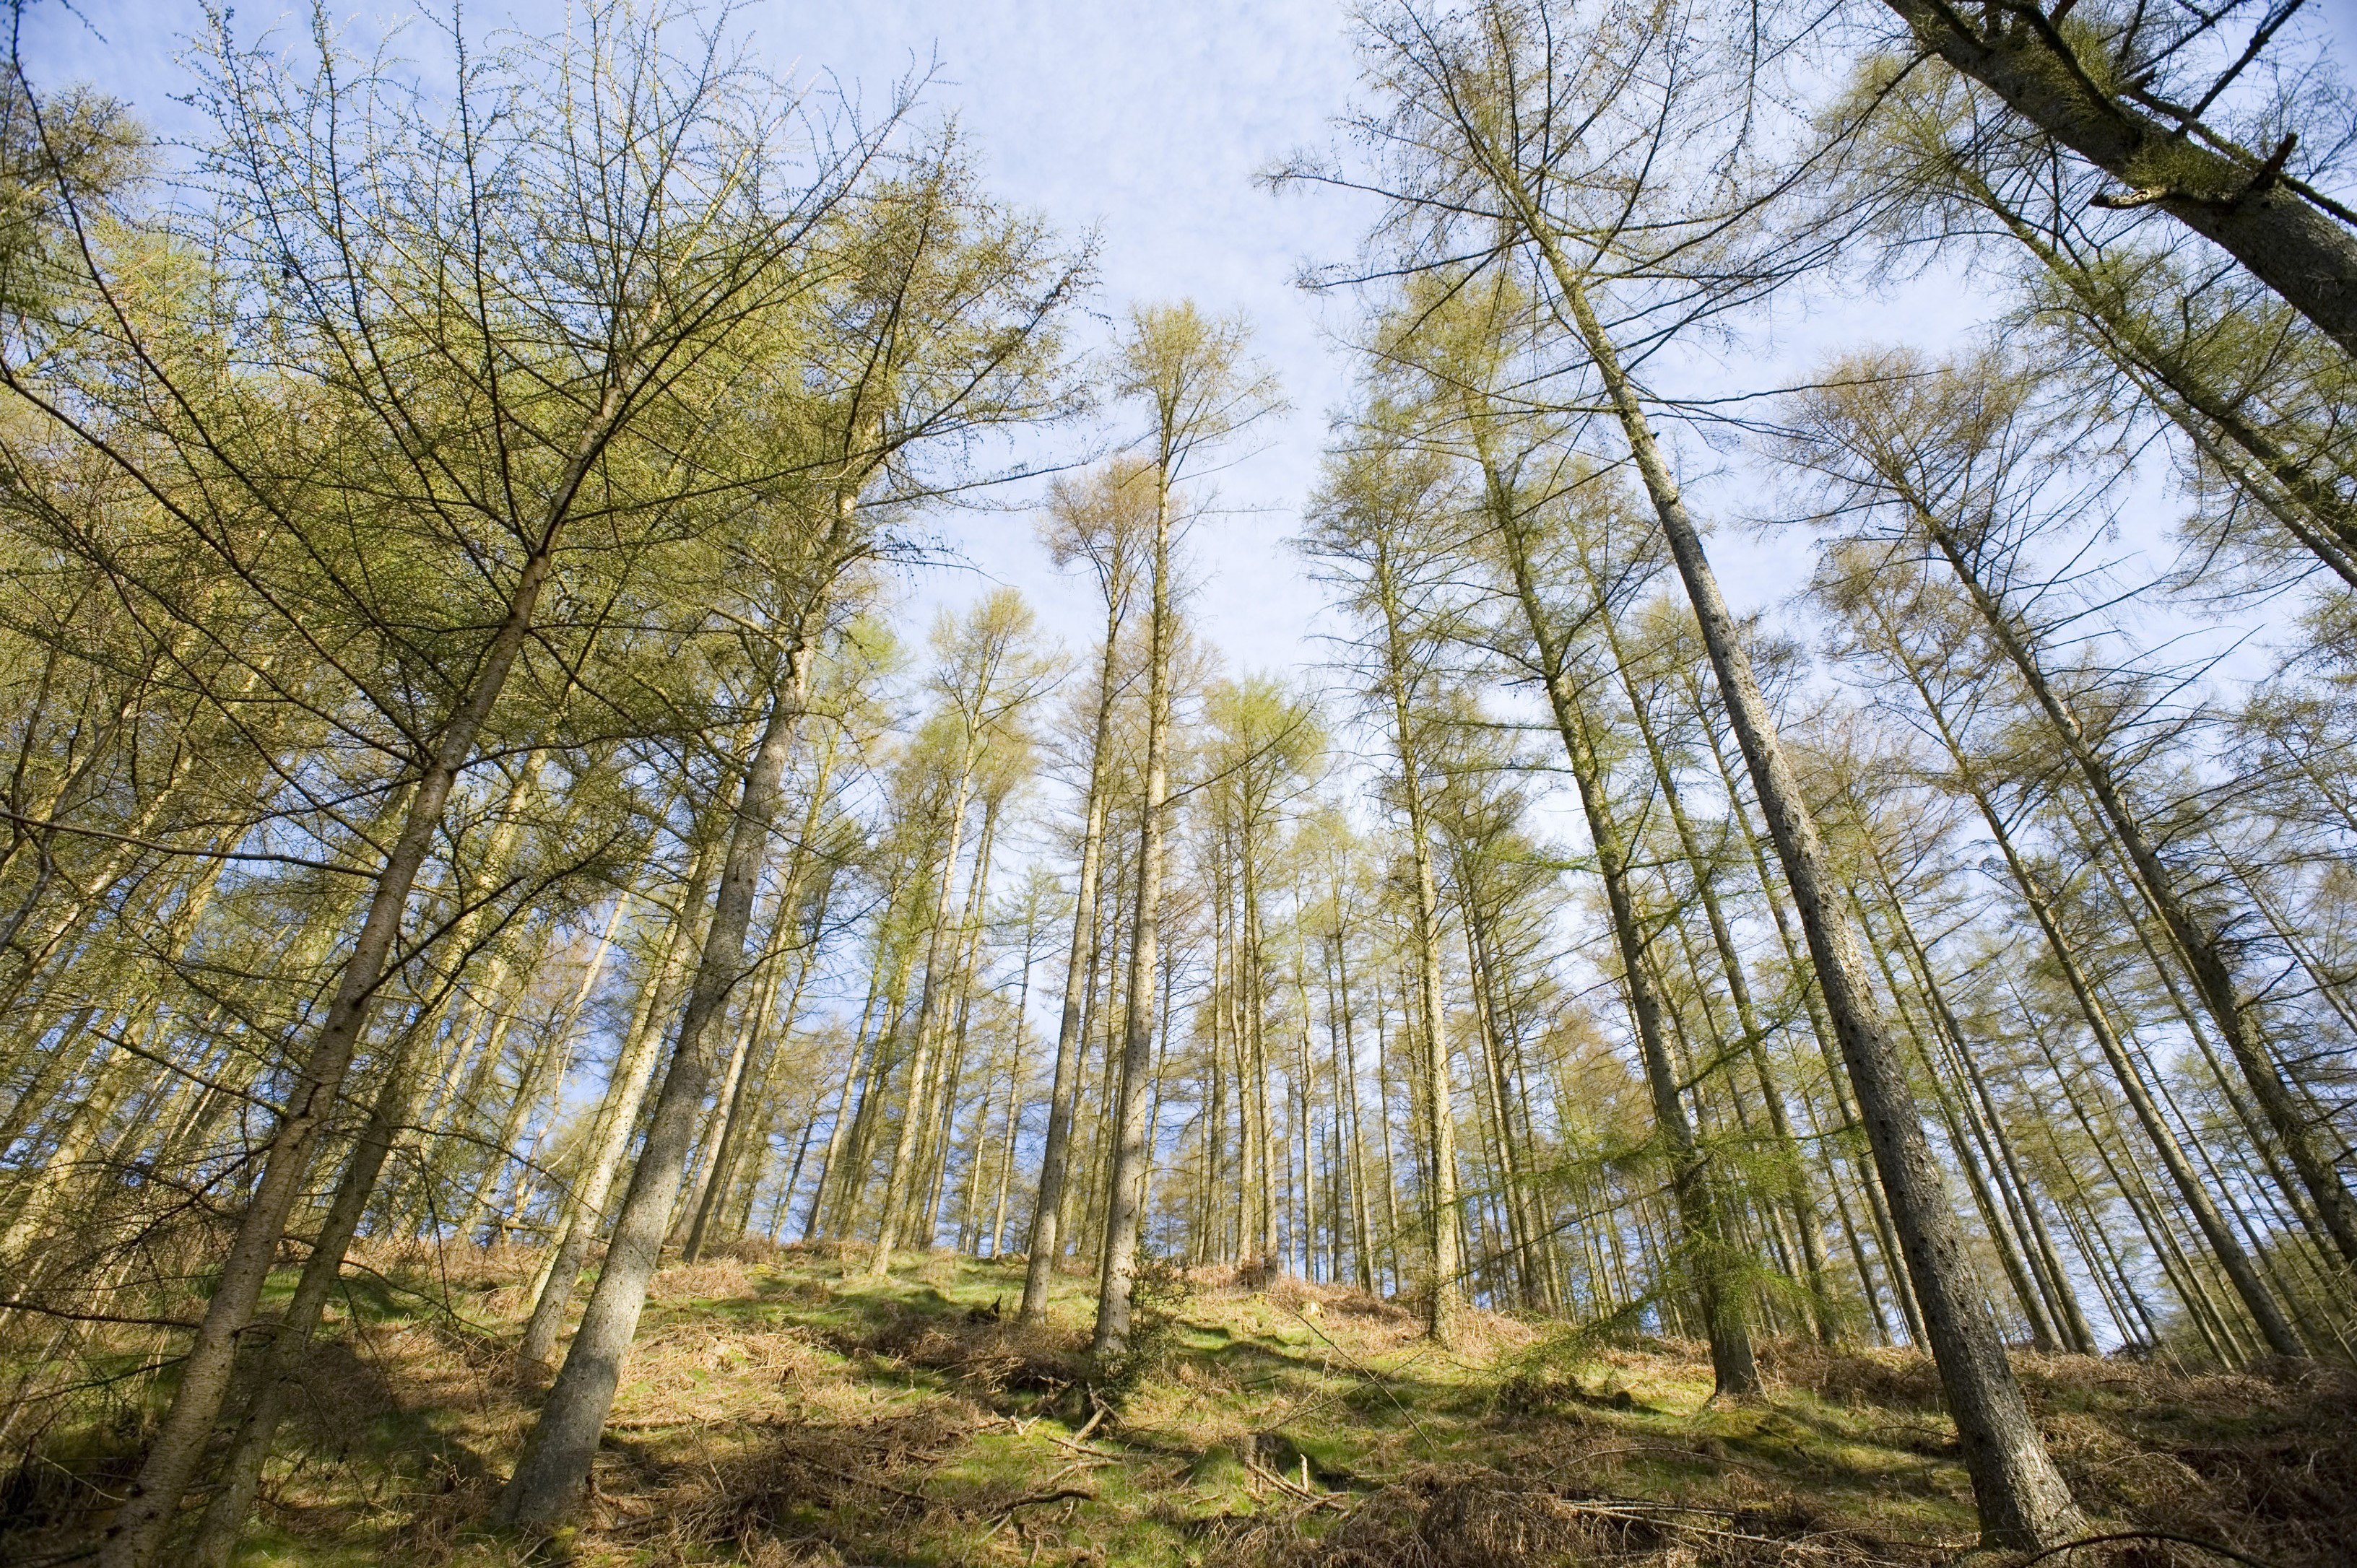 a low angle wide angle view of trees growing in the woods